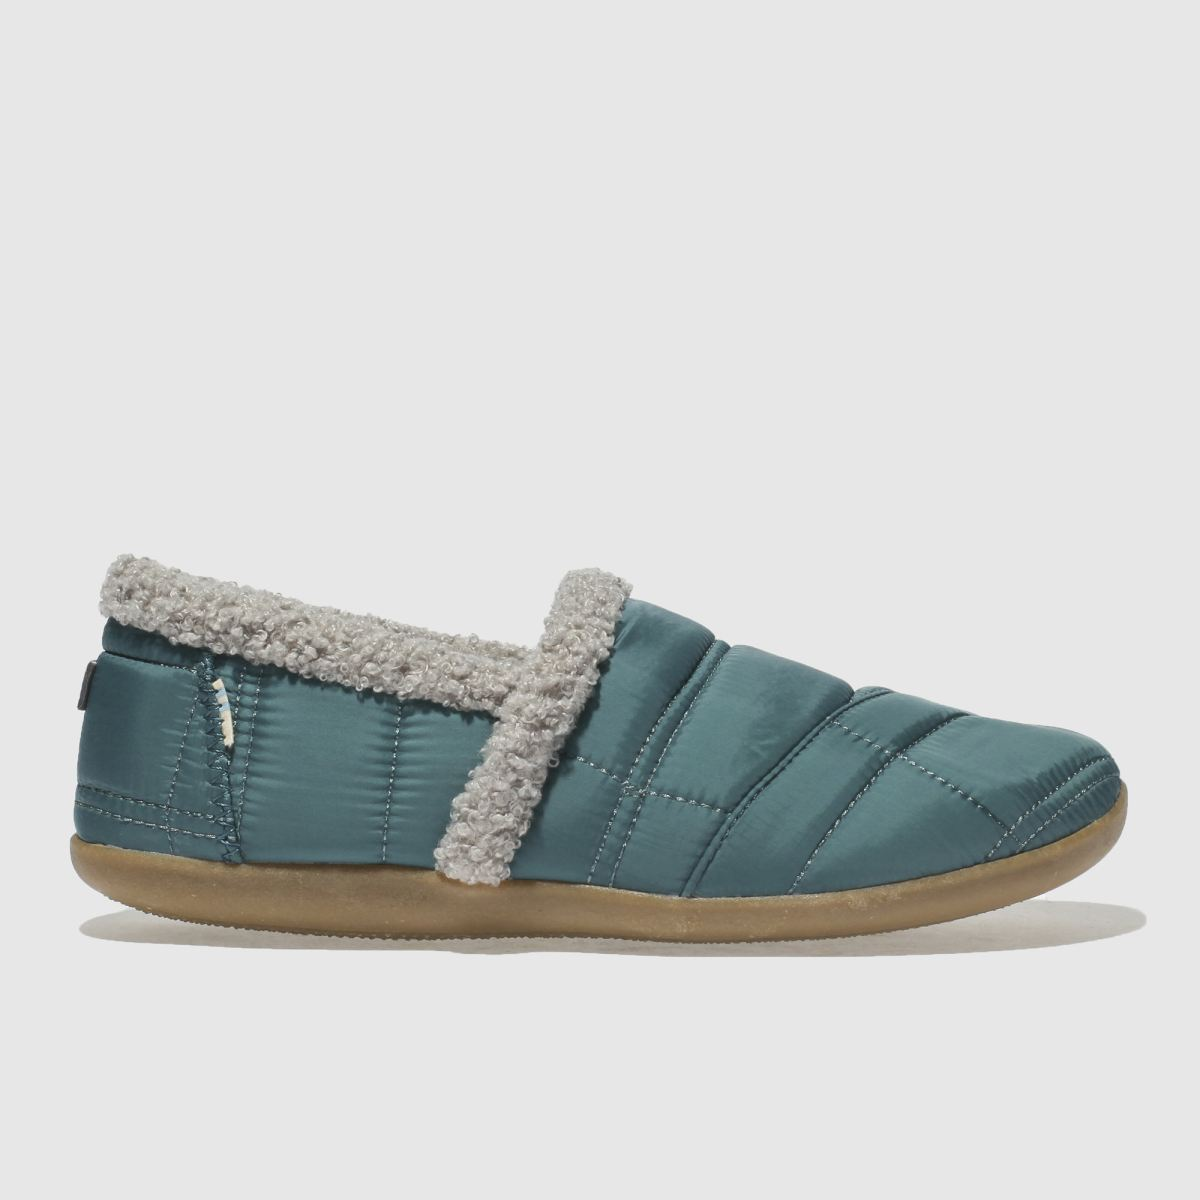 Toms Blue House Slipper Boots Youth